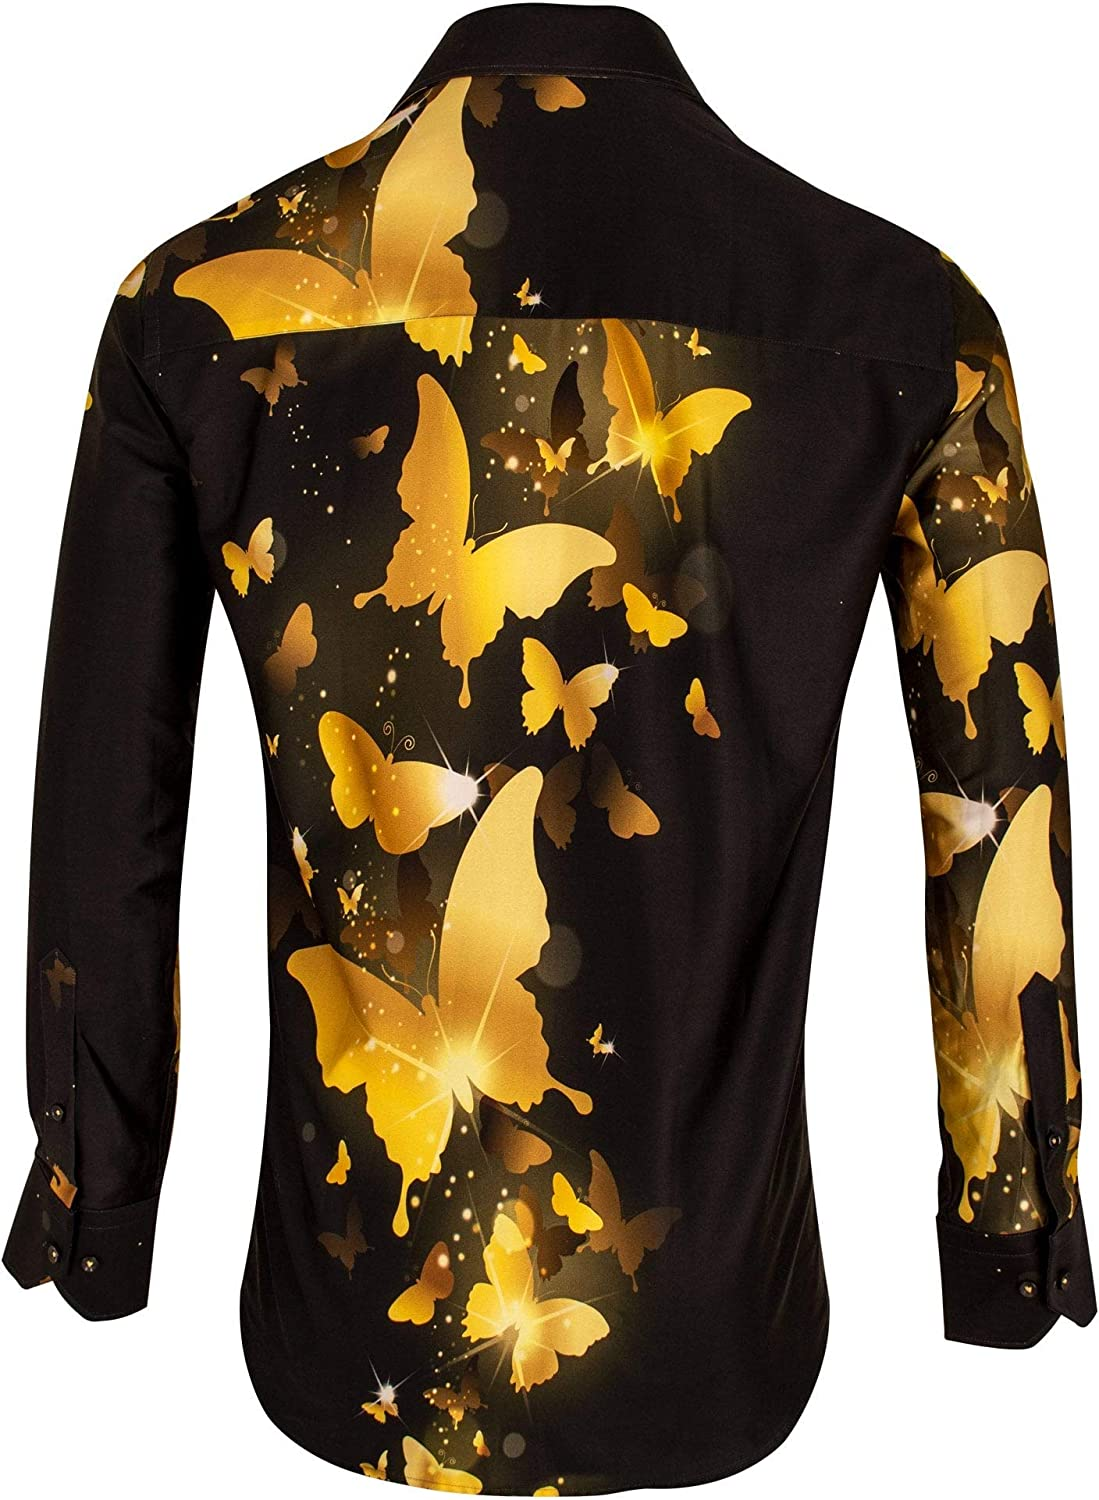 Claudio Lugli Mystical Golden Butterfly Print Mens Shirt Yellow